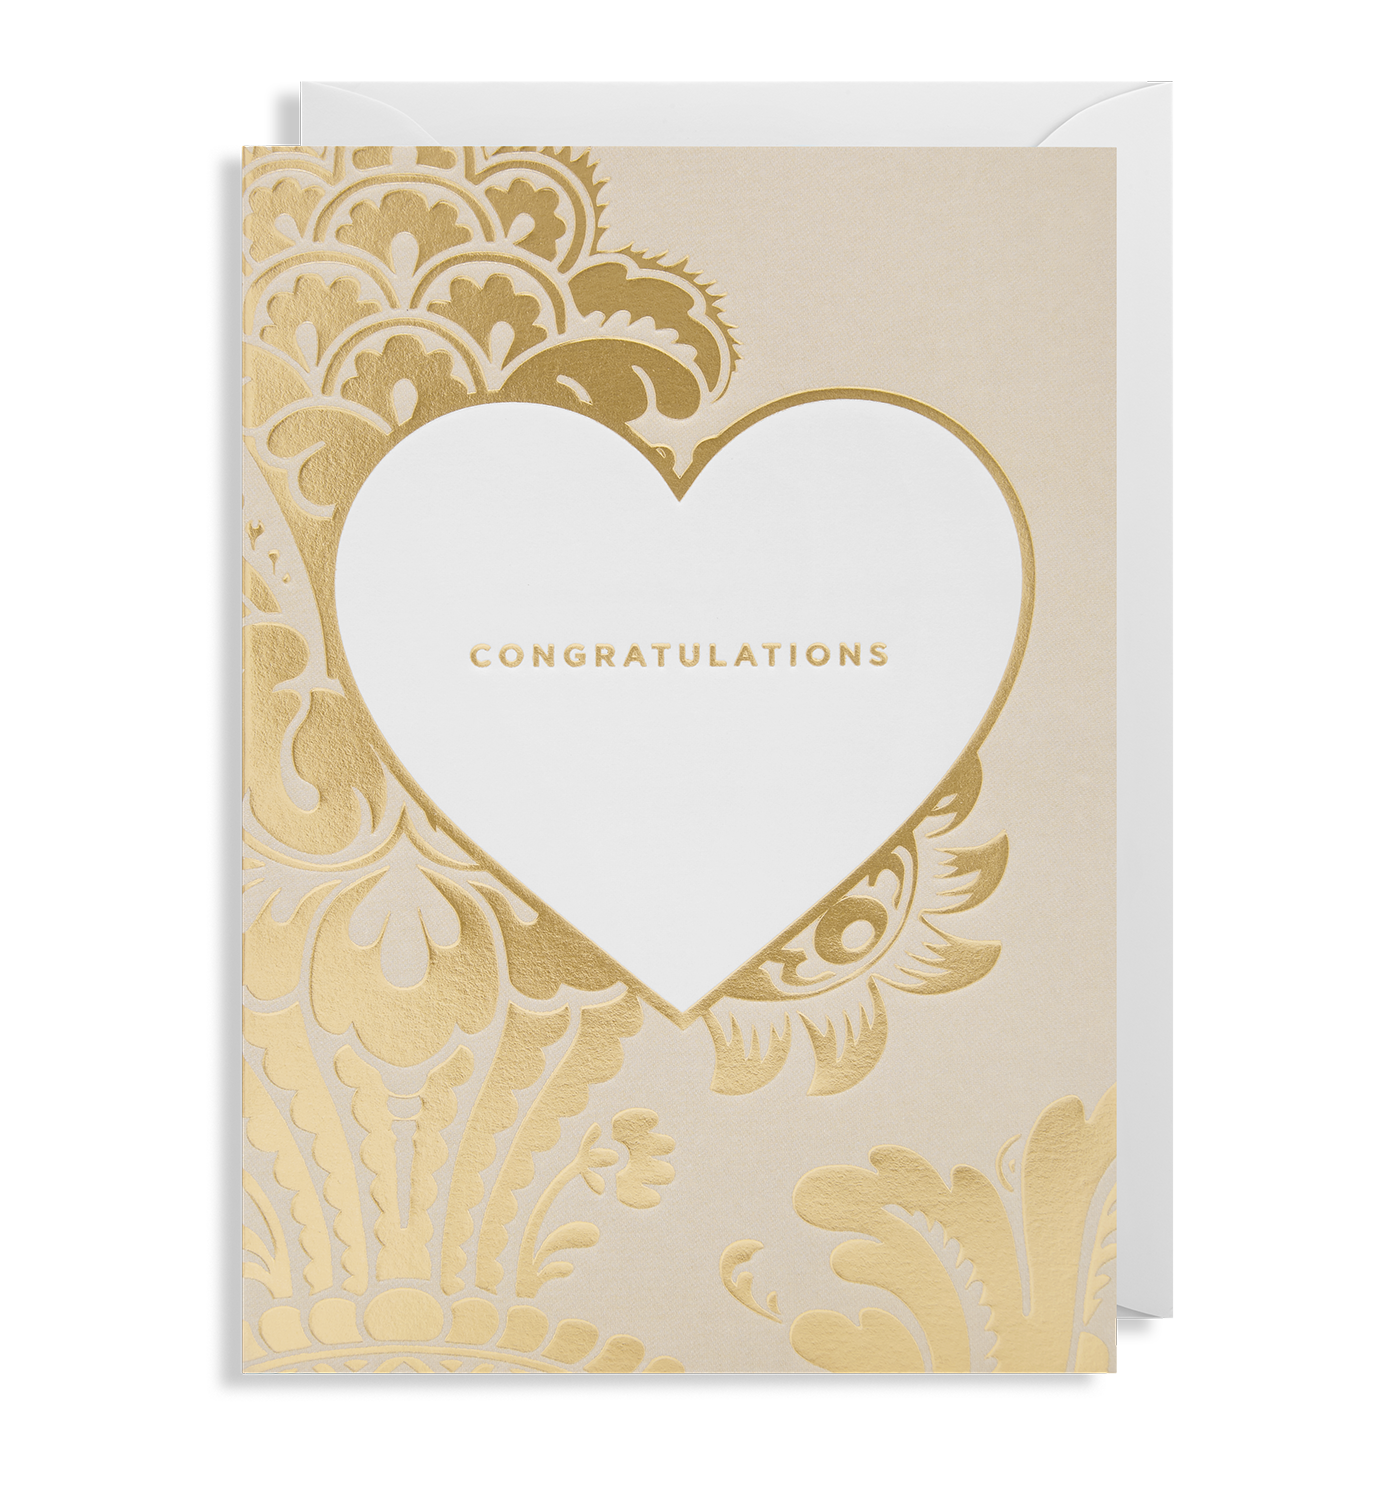 dress - Designs Elegant of congratulation cards pictures video